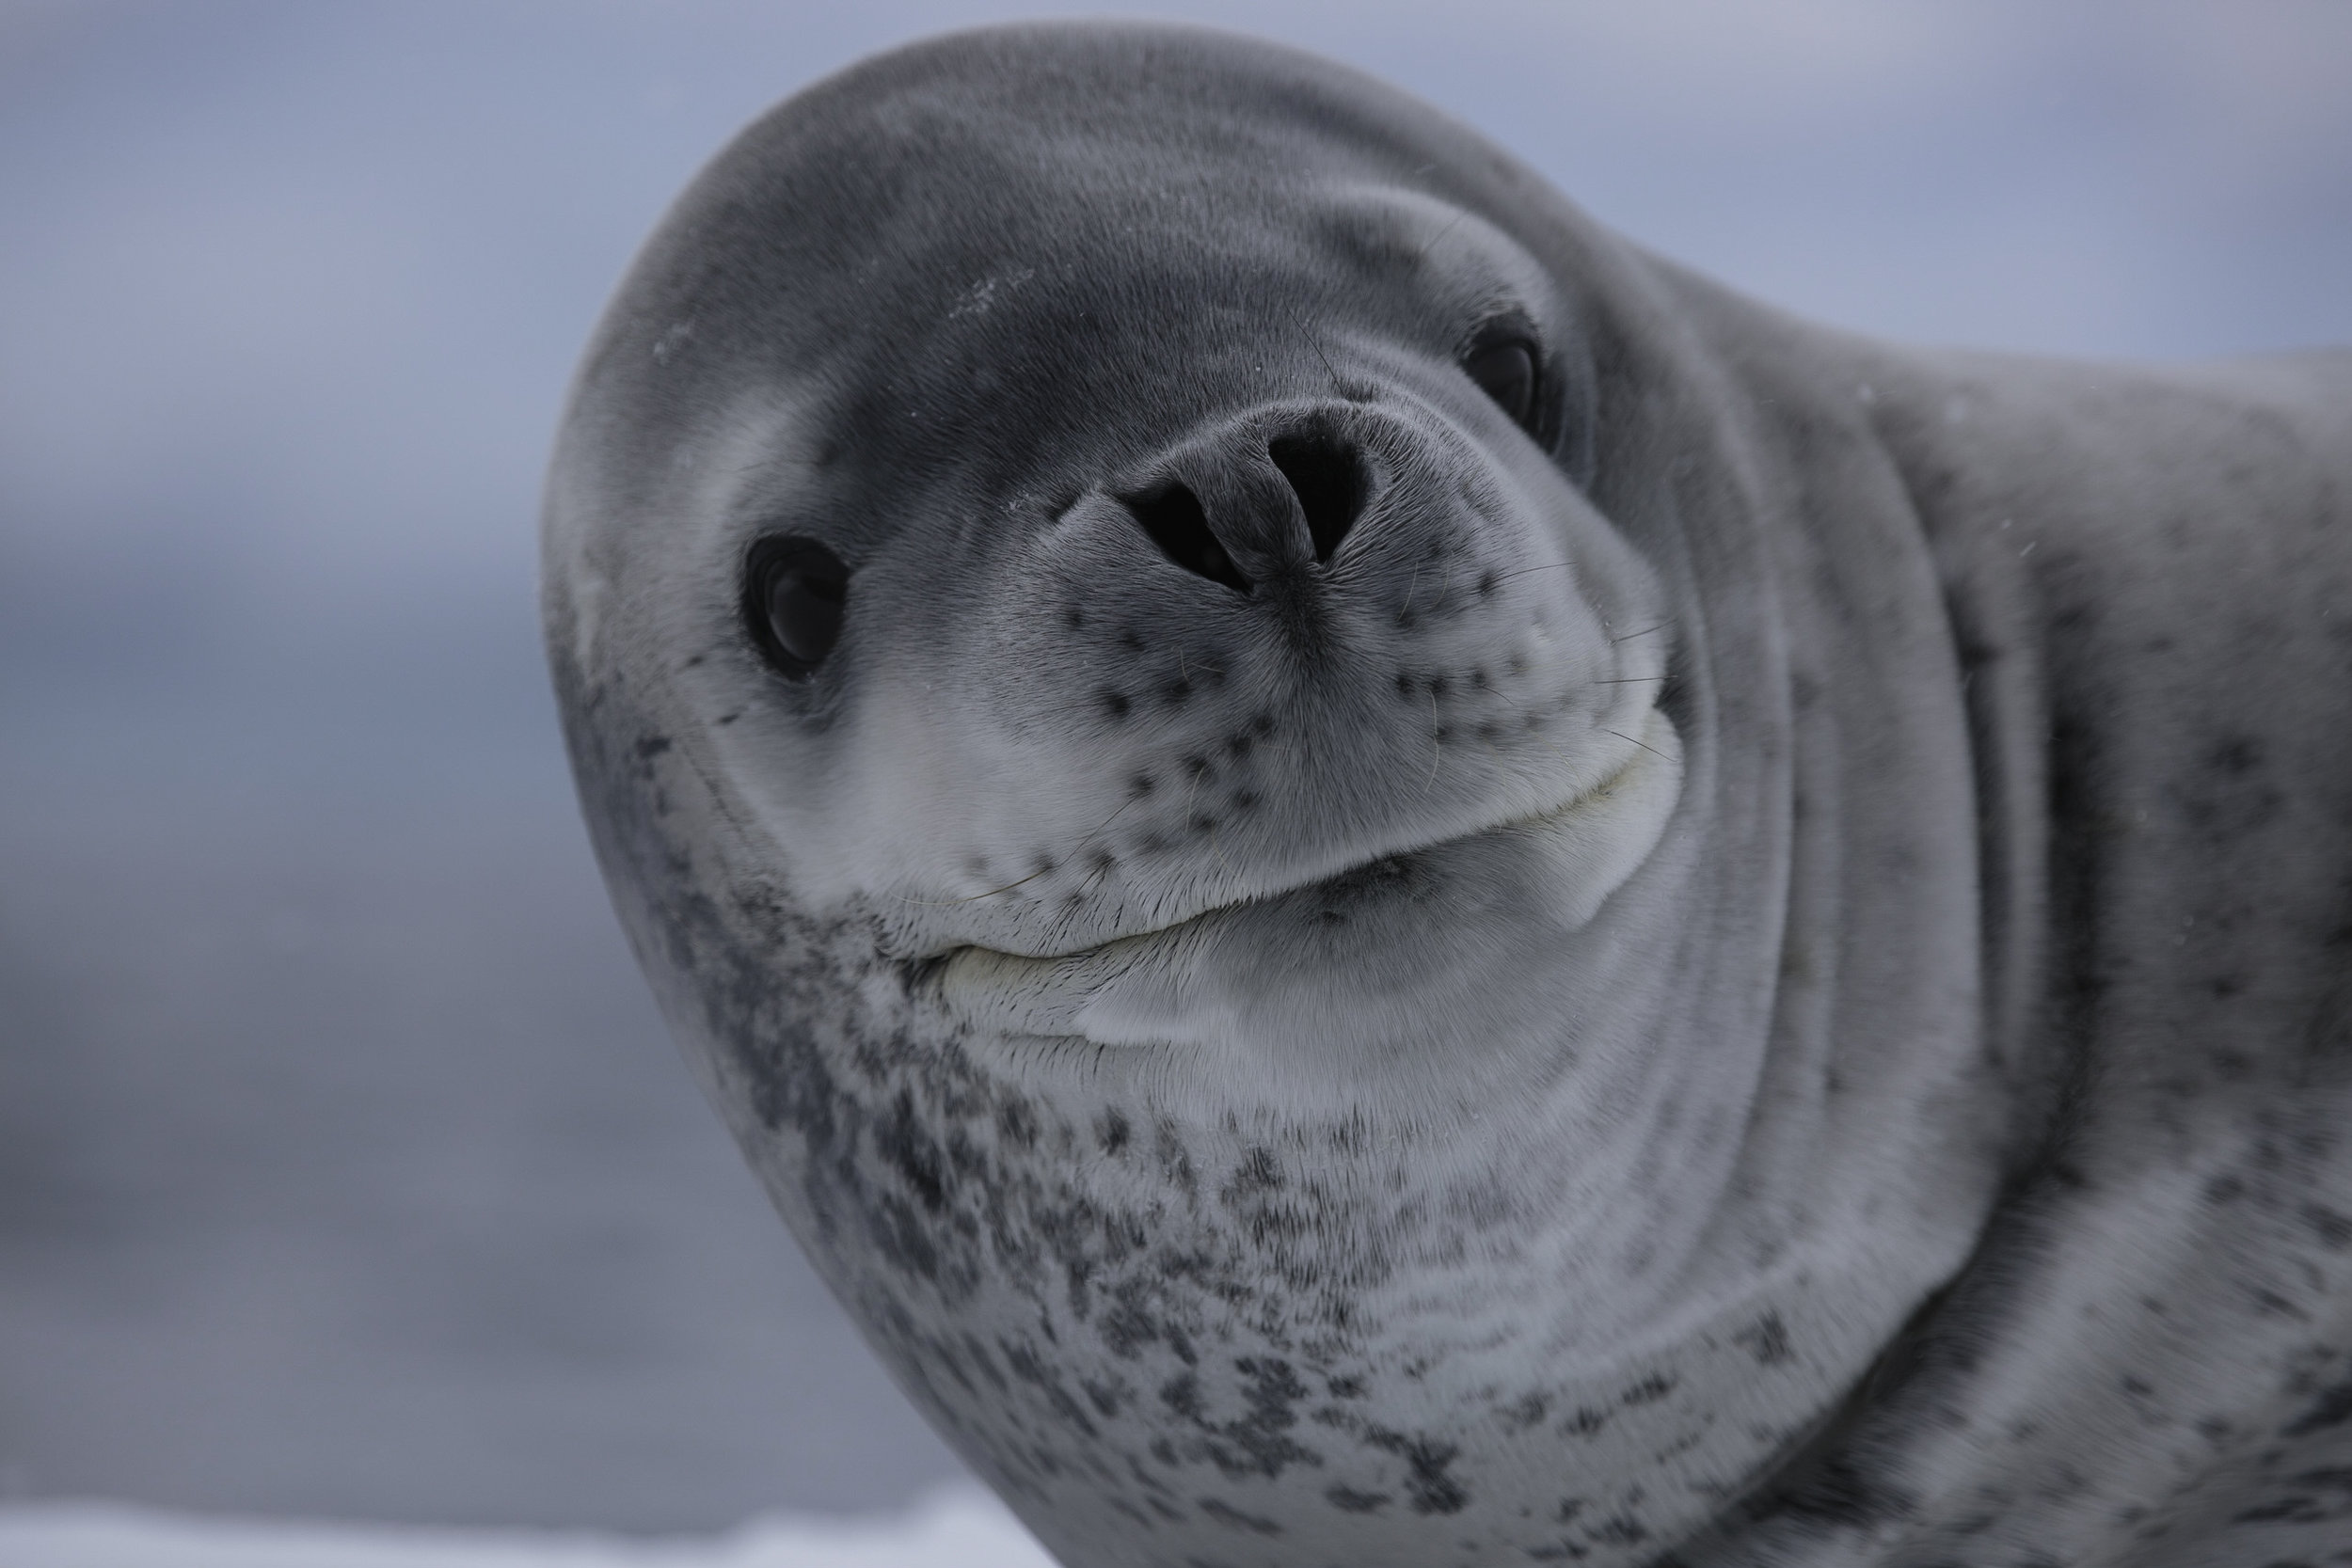 A leopard seal wakes up from a nap and very unconcernedly takes a look at us.